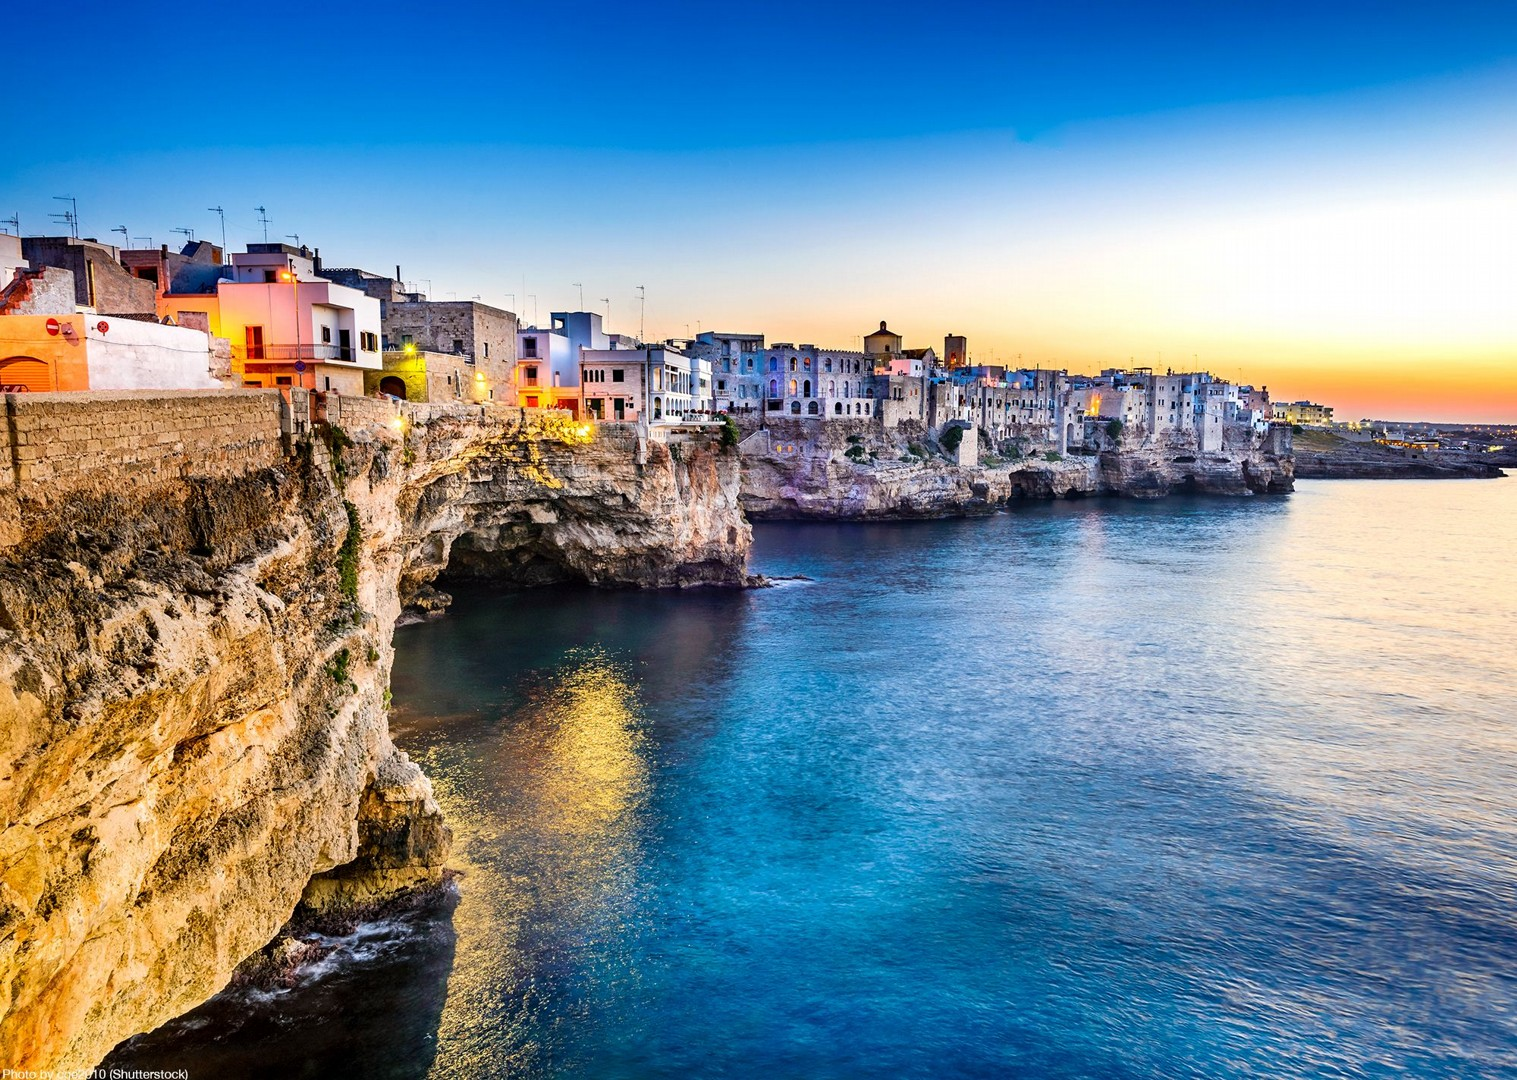 shutterstock_488694136.jpg - Italy - Puglia - Self-Guided Leisure Cycling Holiday - Leisure Cycling